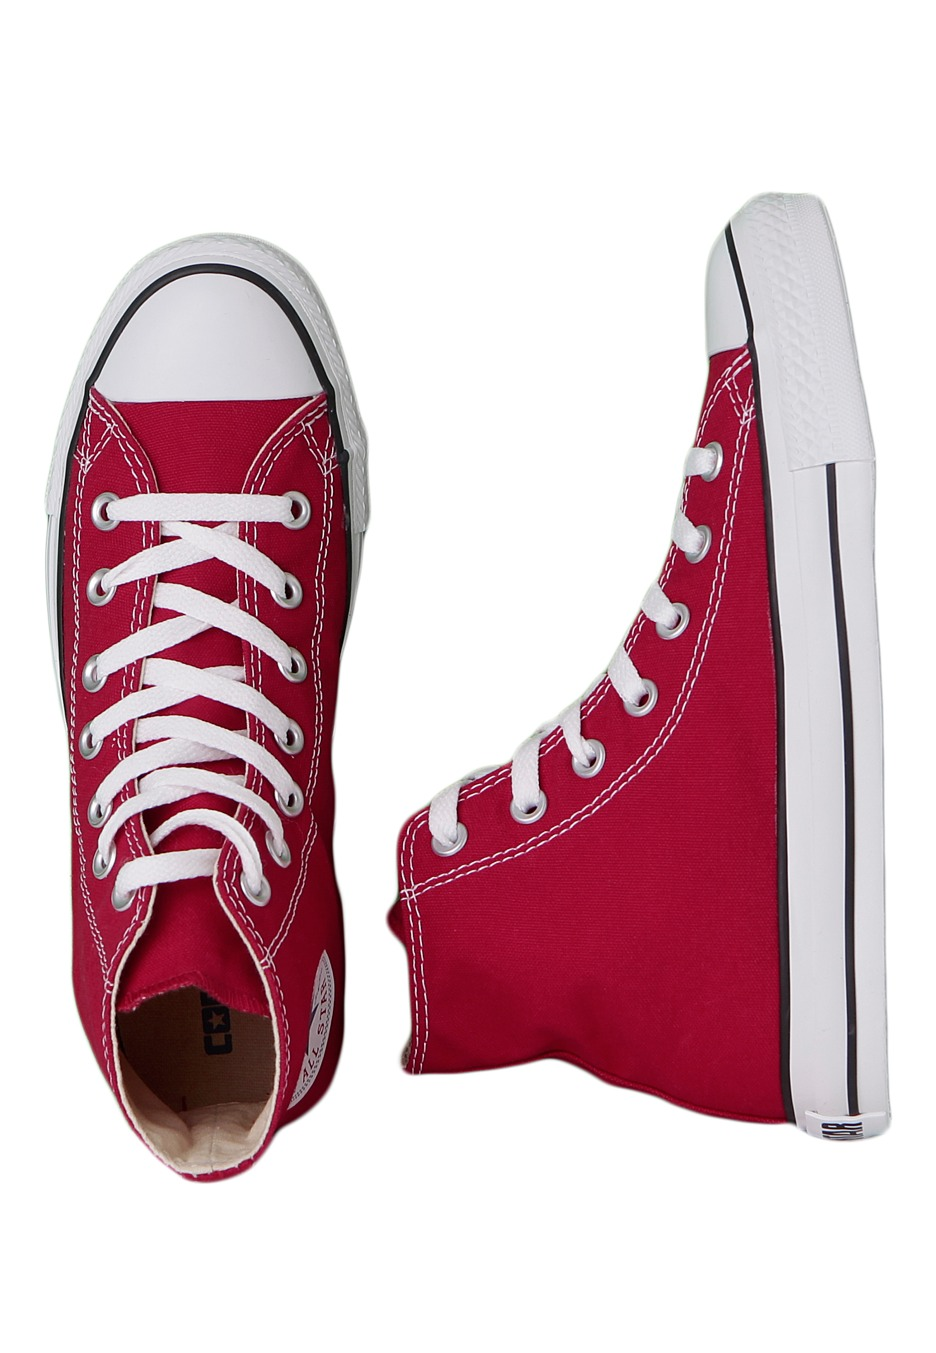 Converse Chuck Taylor All Star HI Red Girl Shoes